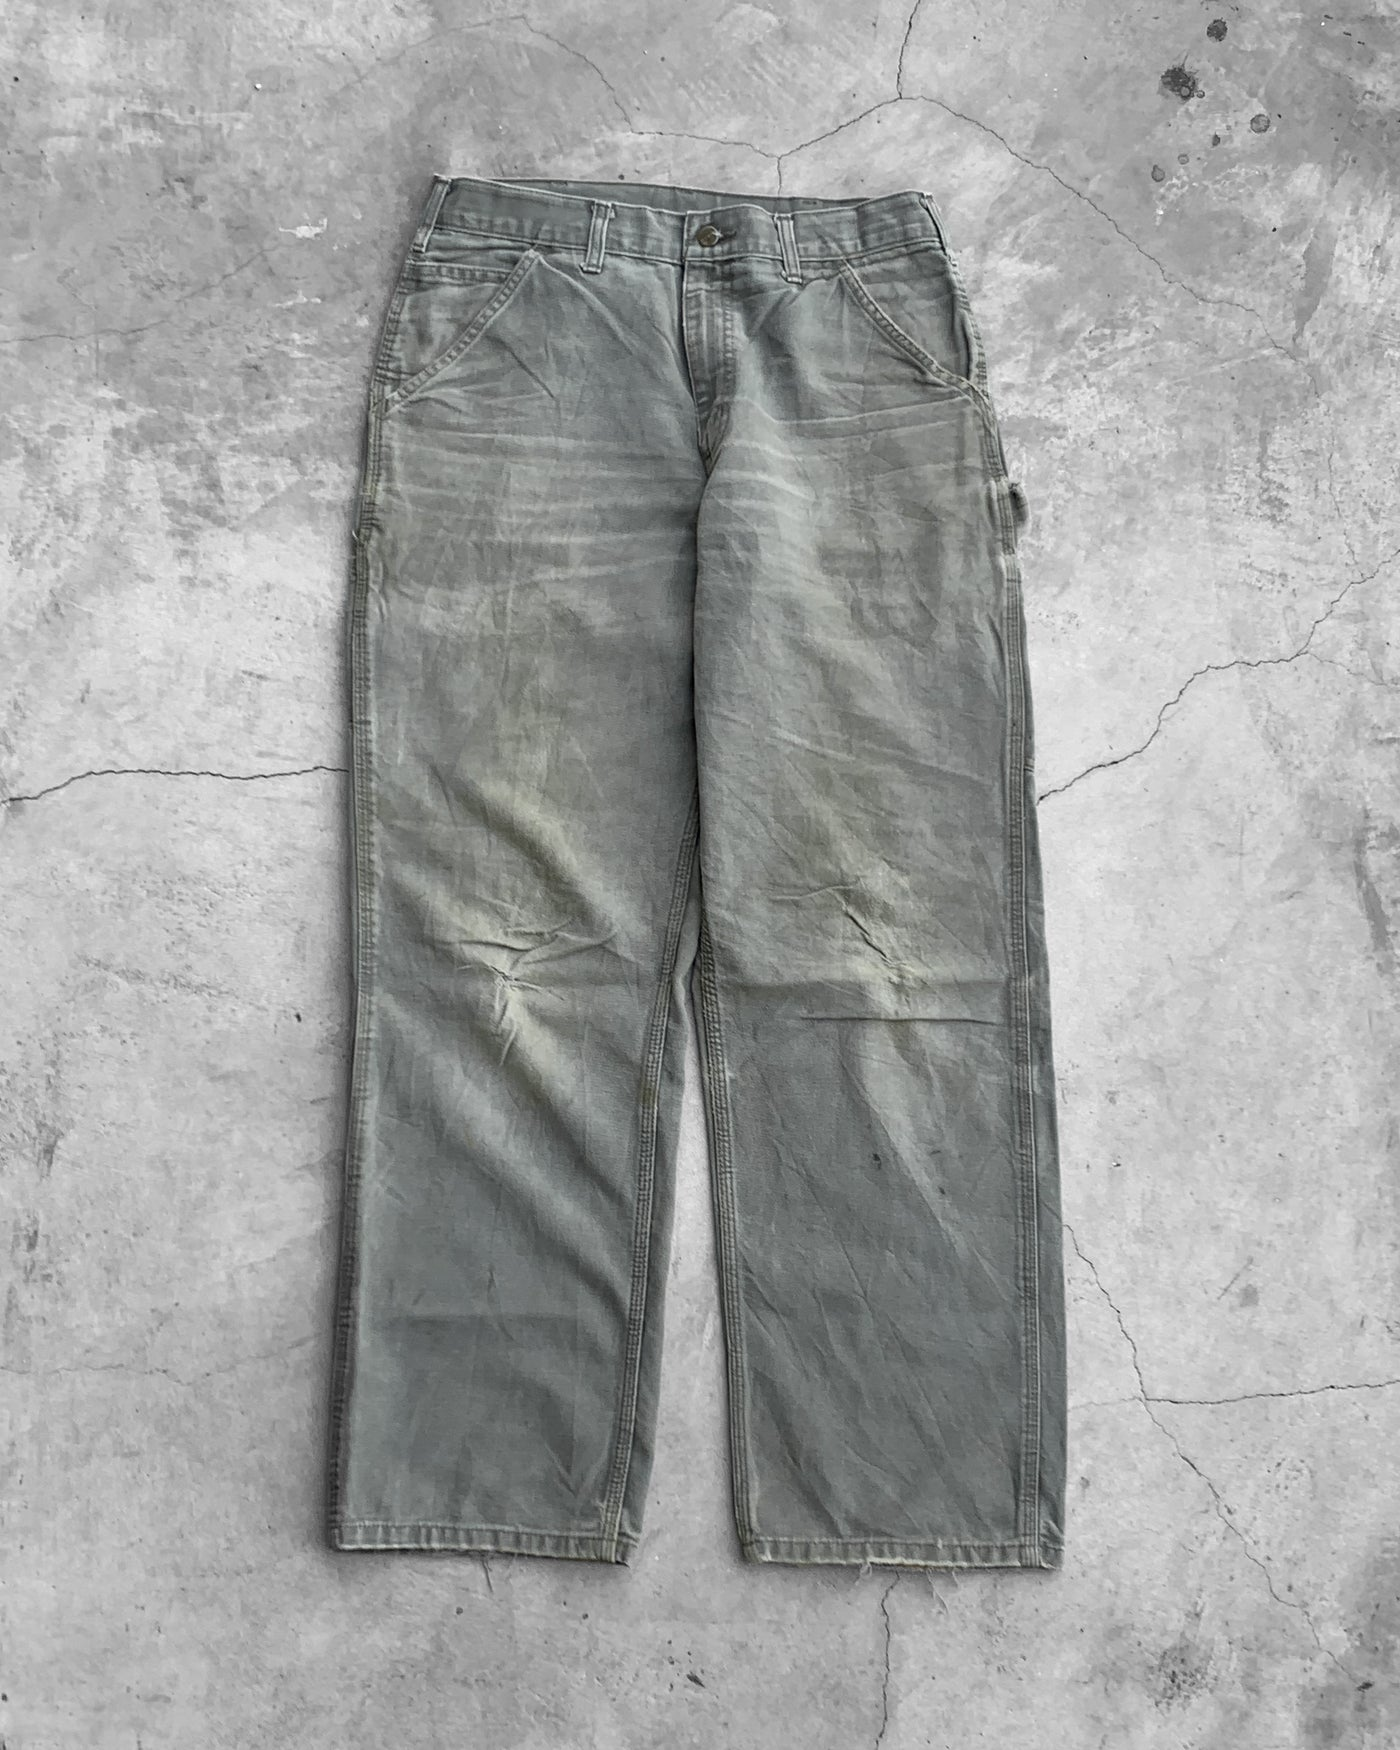 Carhartt Sage Green Distressed Pants - 1990s